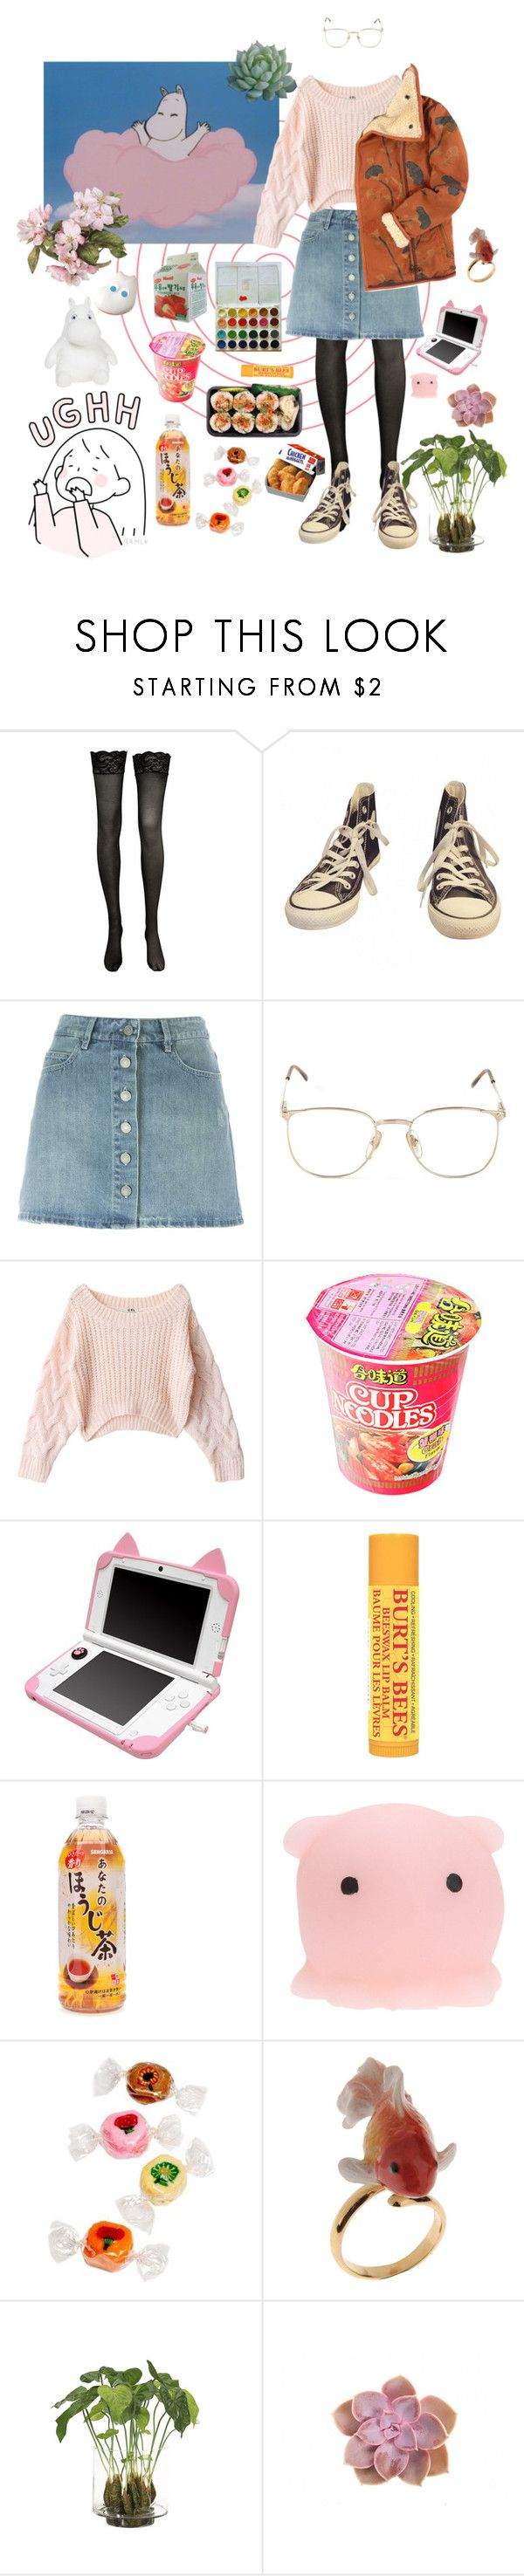 """moomin"" by thestarrynightsky ❤ liked on Polyvore featuring Converse, Étoile Isabel Marant, Persol, Scotch & Soda, Burt's Bees, Nach and NDI"